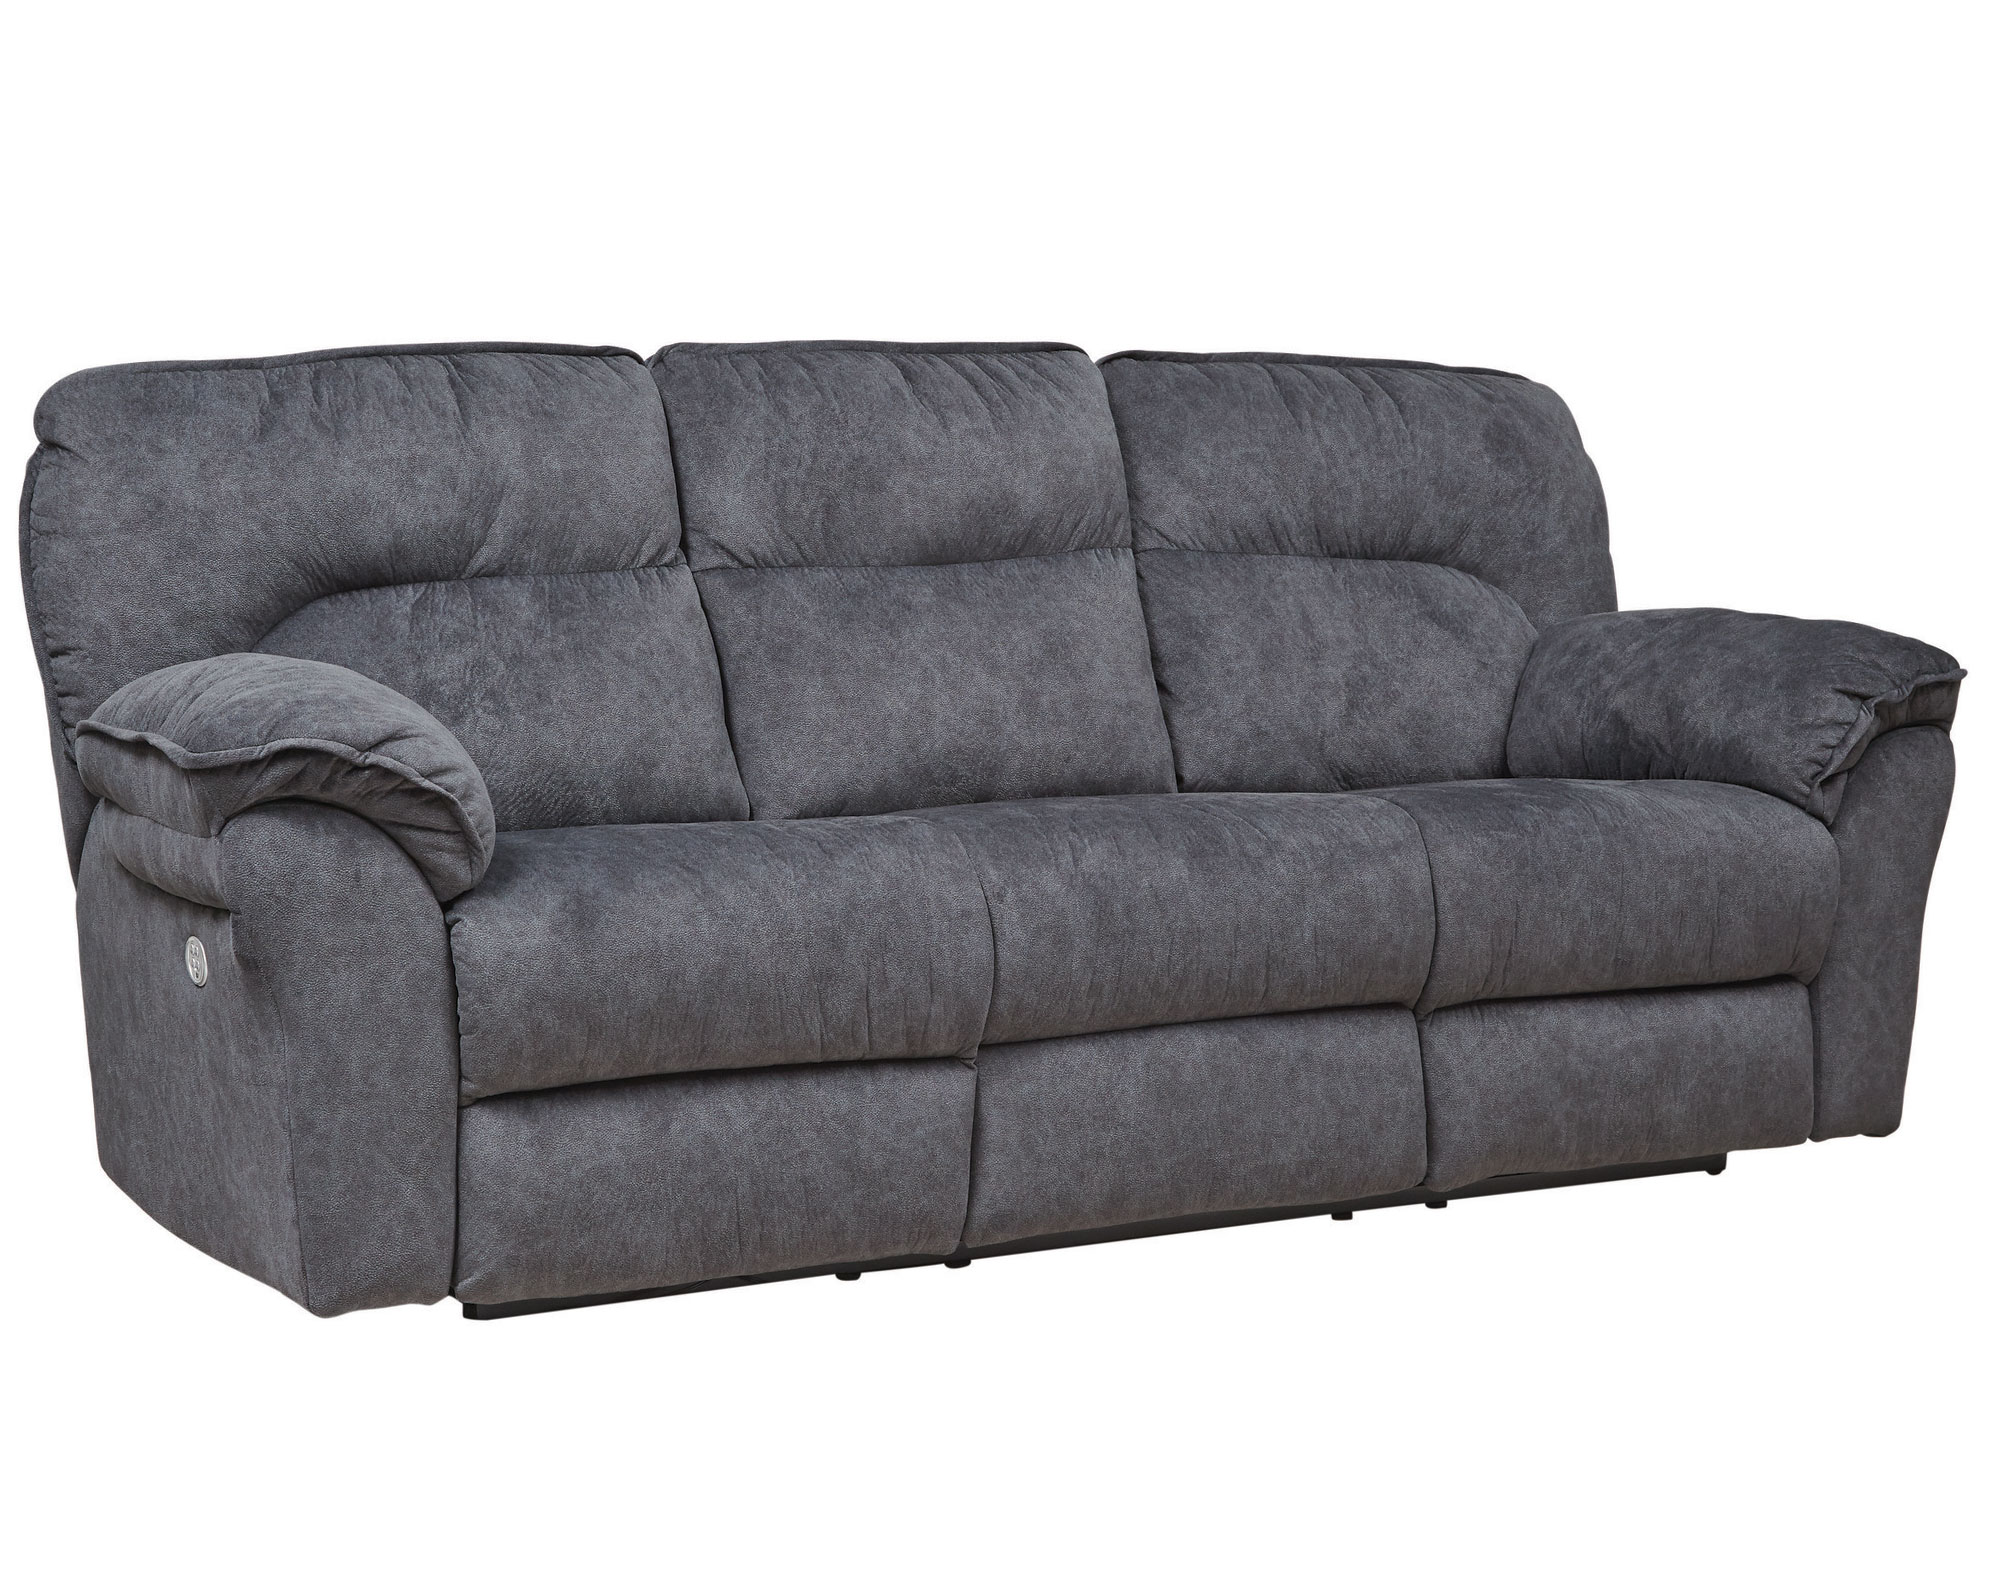 Full Ride 96 Double Reclining Sofa